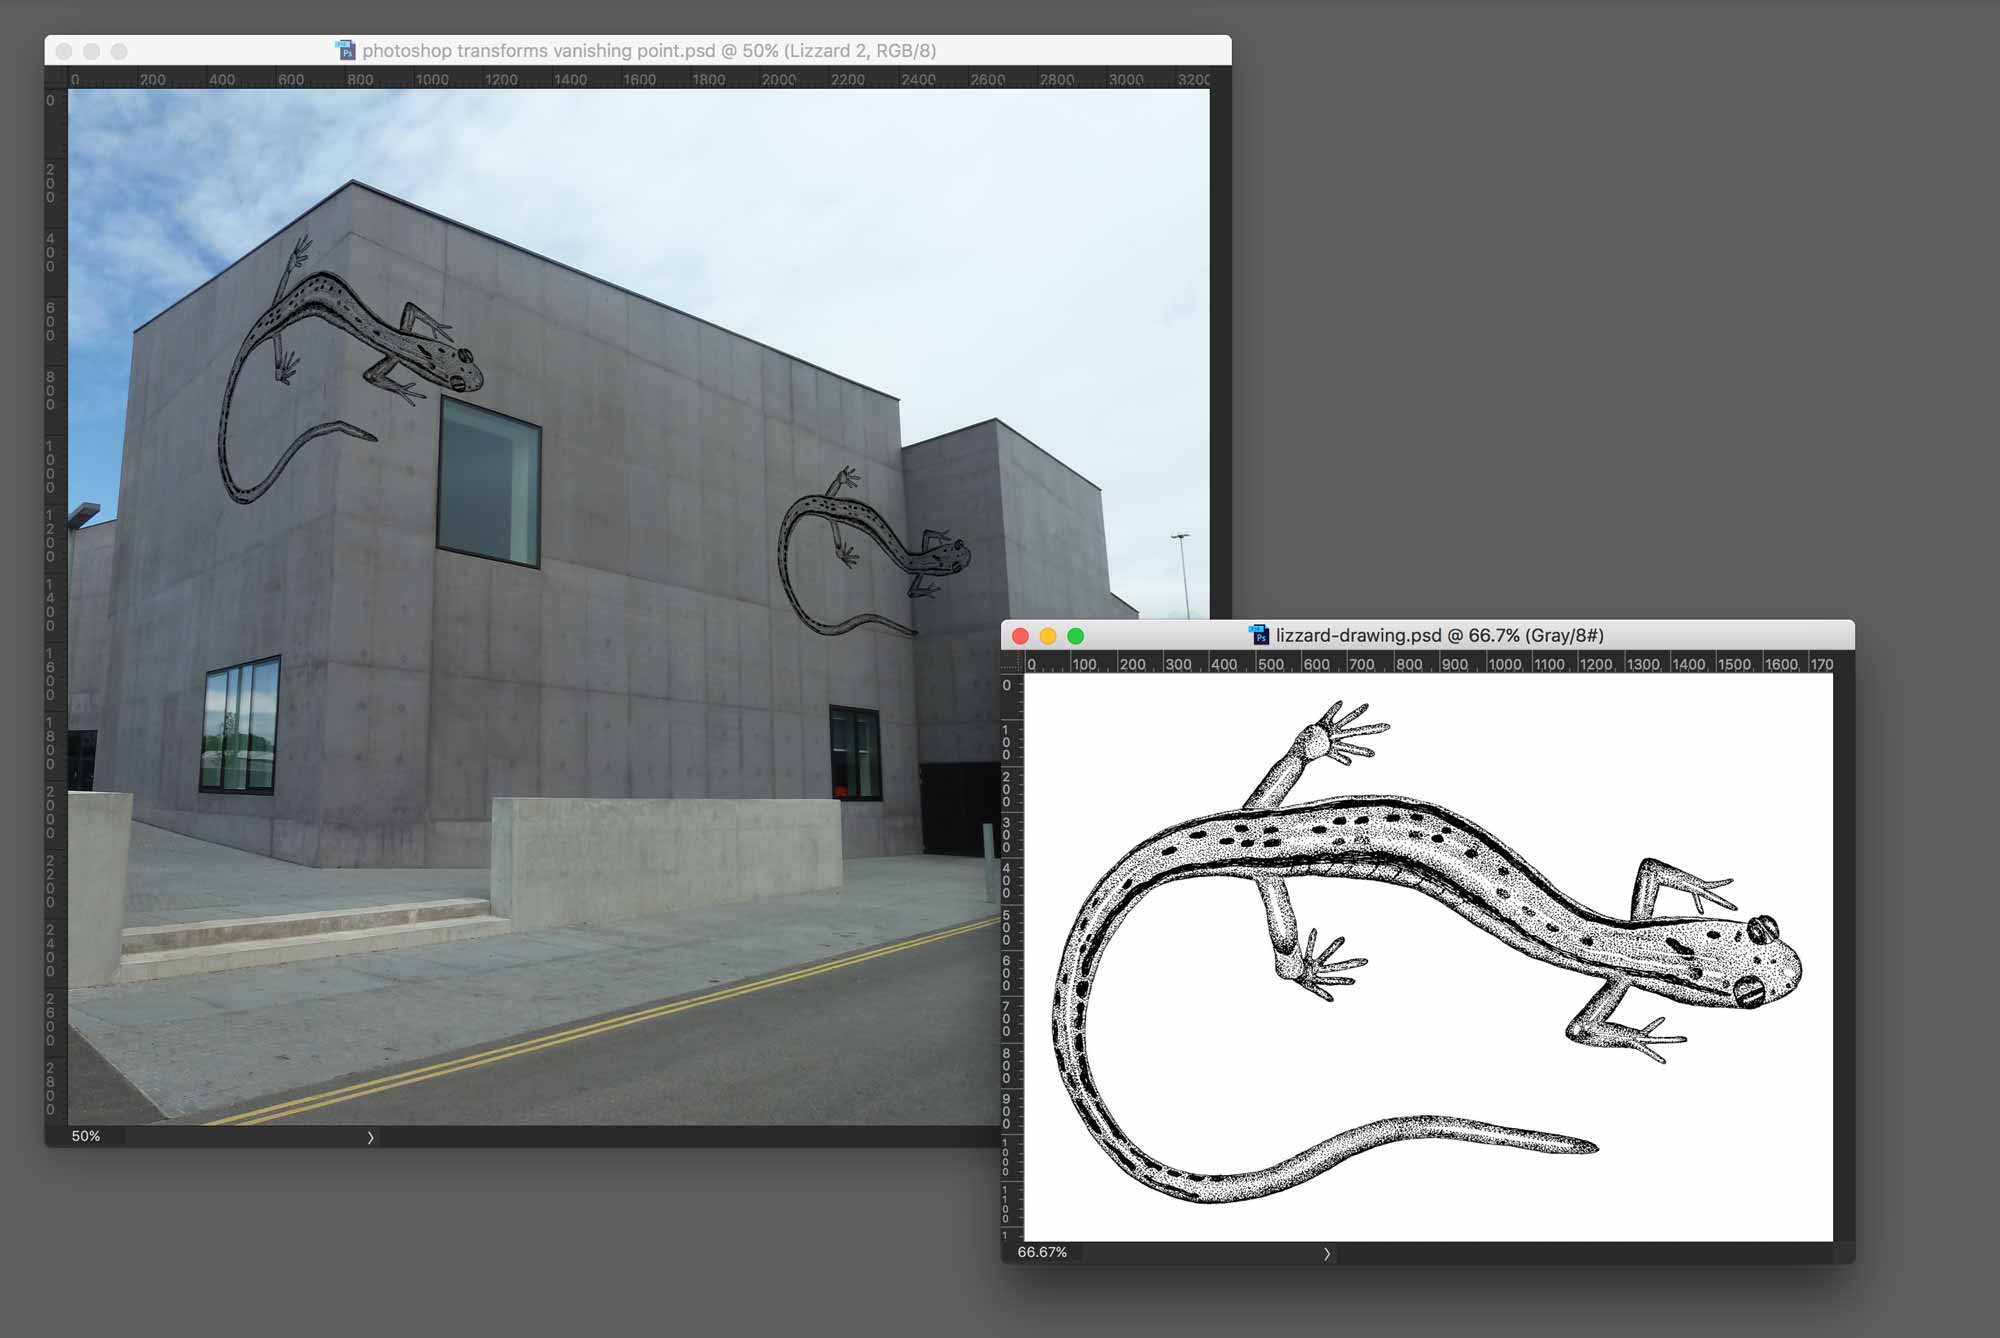 photoshop-transforms-vanishing-point-example